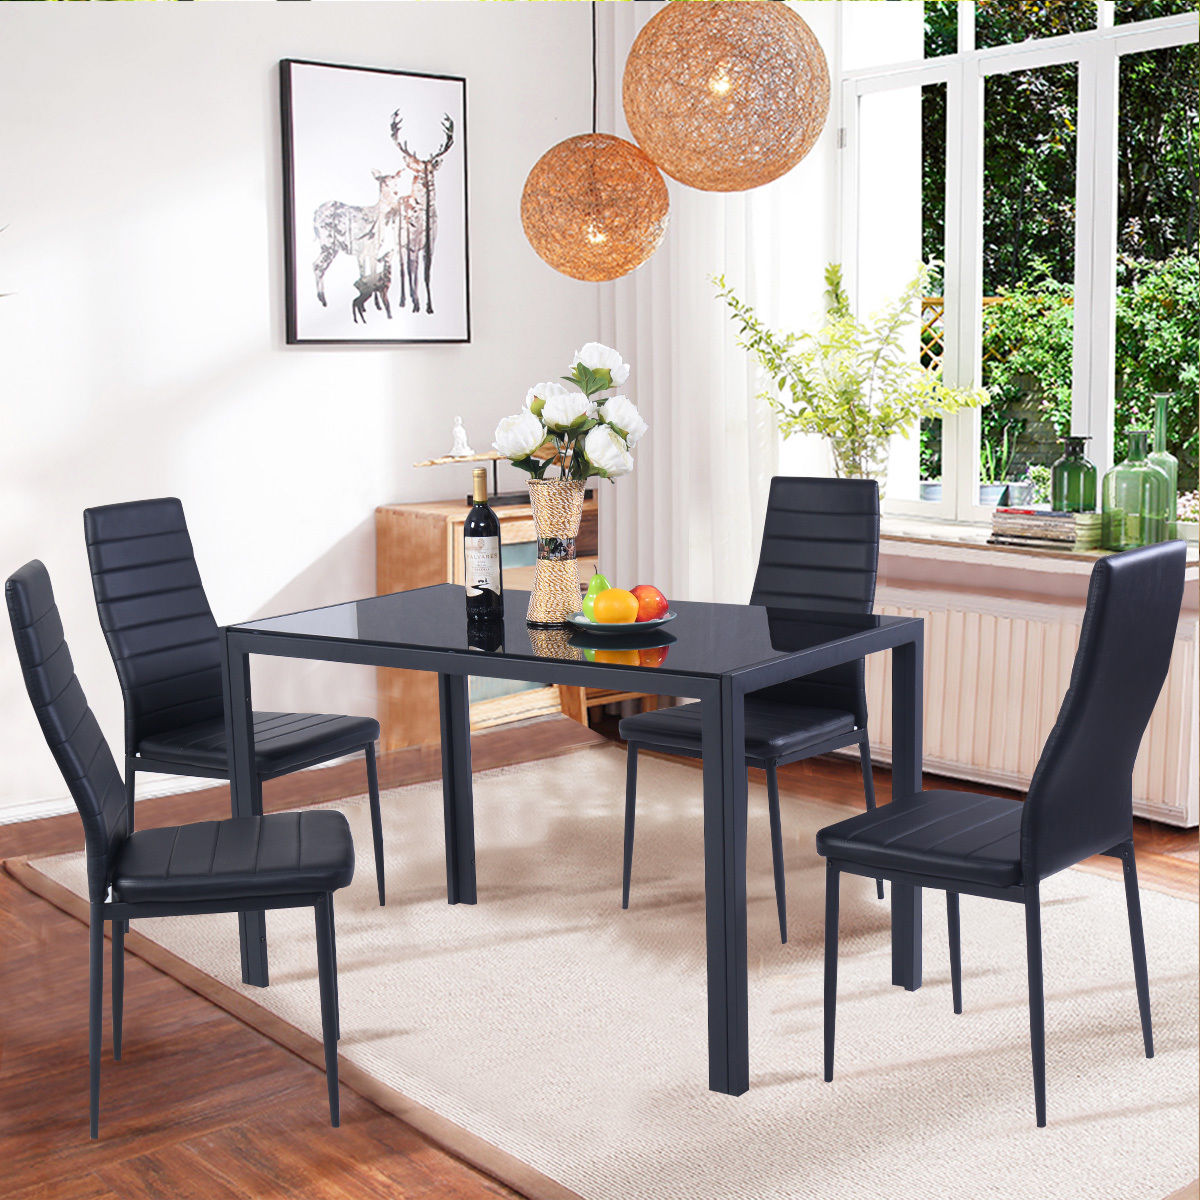 Breakfast Nook Table Set. Medium Size Of Dining Room Breakfast ...